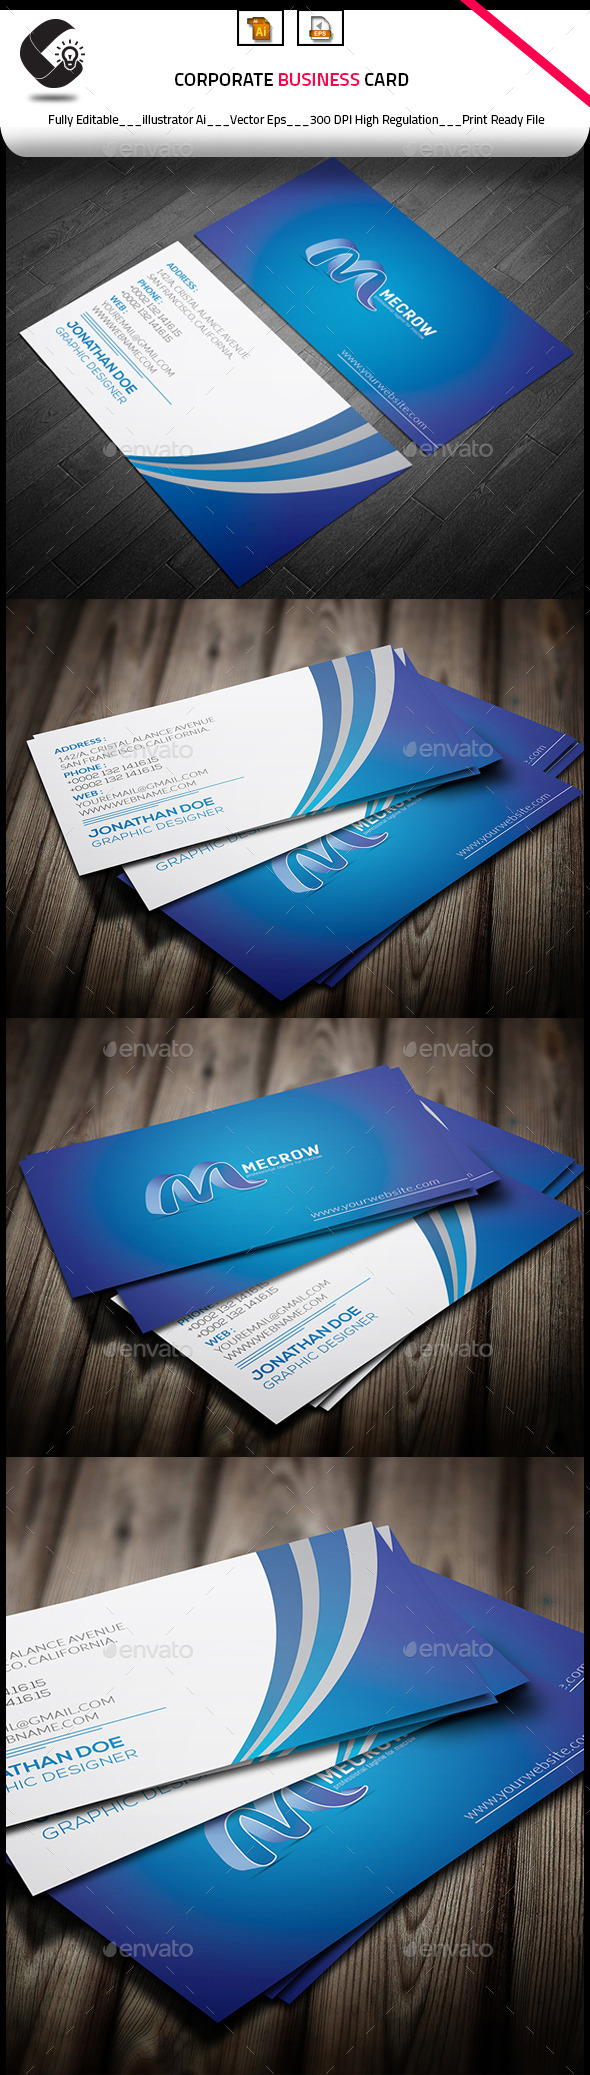 GraphicRiver Corporate Business Card 10010337